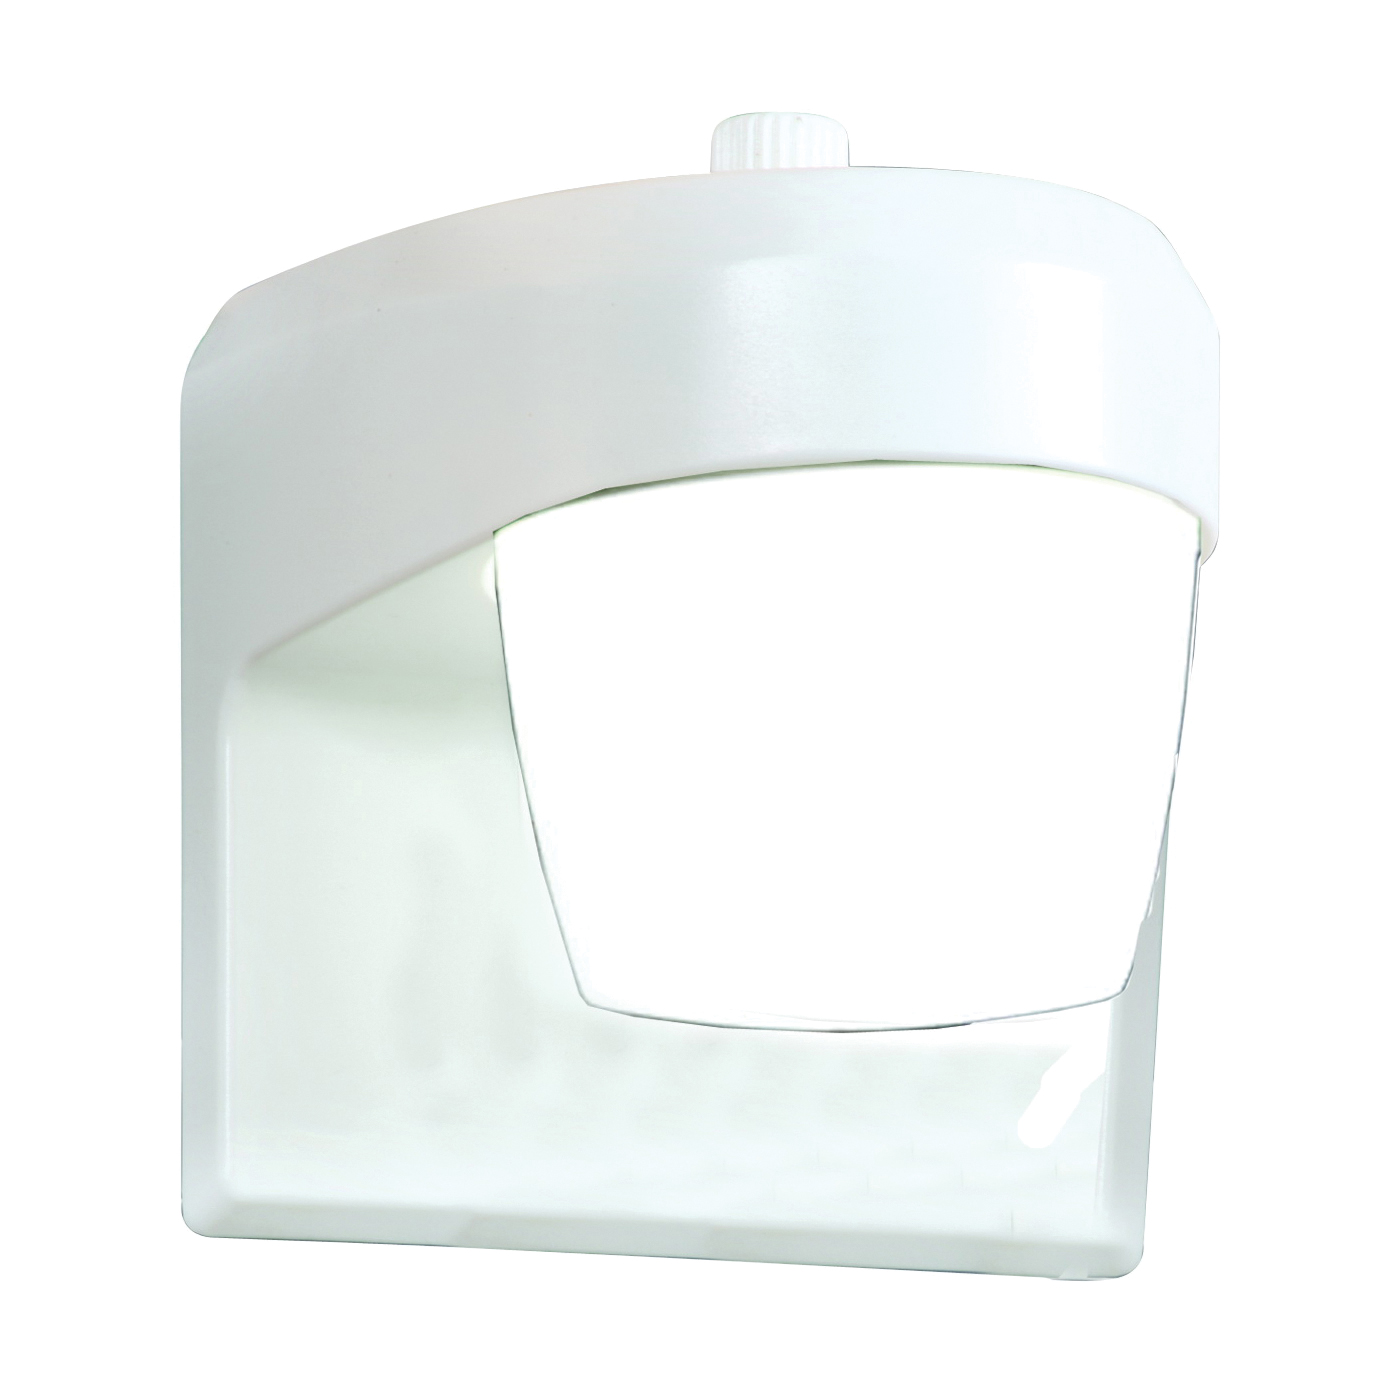 Picture of Eaton Lighting ALL-PRO FES0650LPCW Entry and Patio Light, 120 V, LED Lamp, 637 Lumens, 5000 K Color Temp